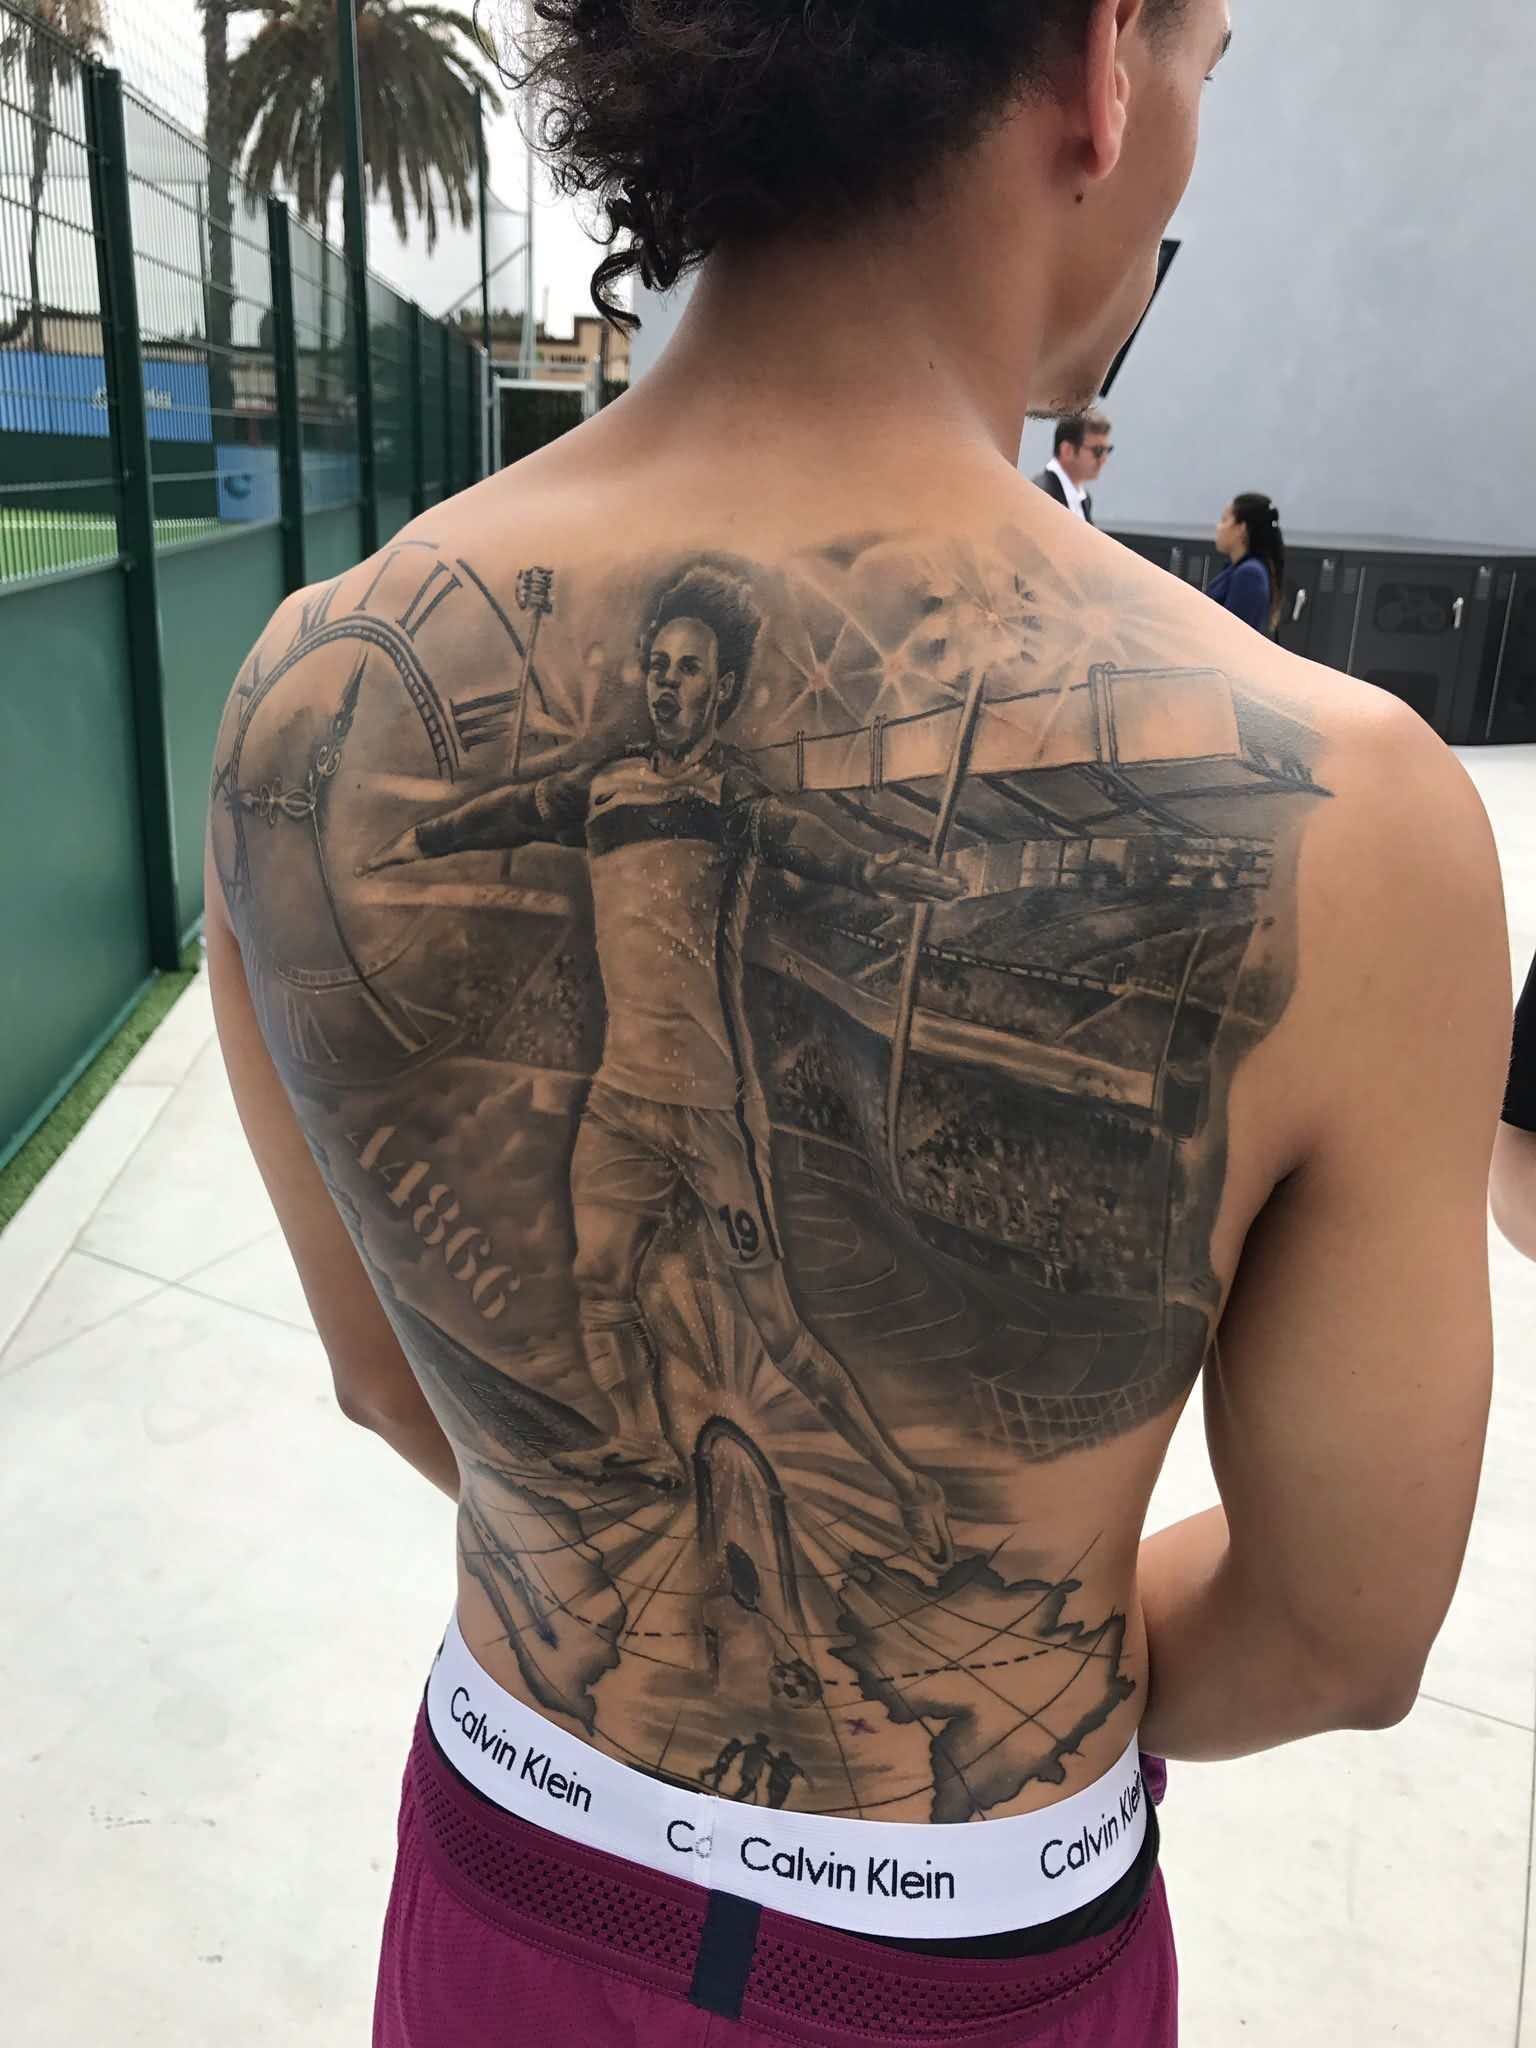 Amazing Leroy Sane's Tattoo Of Himself